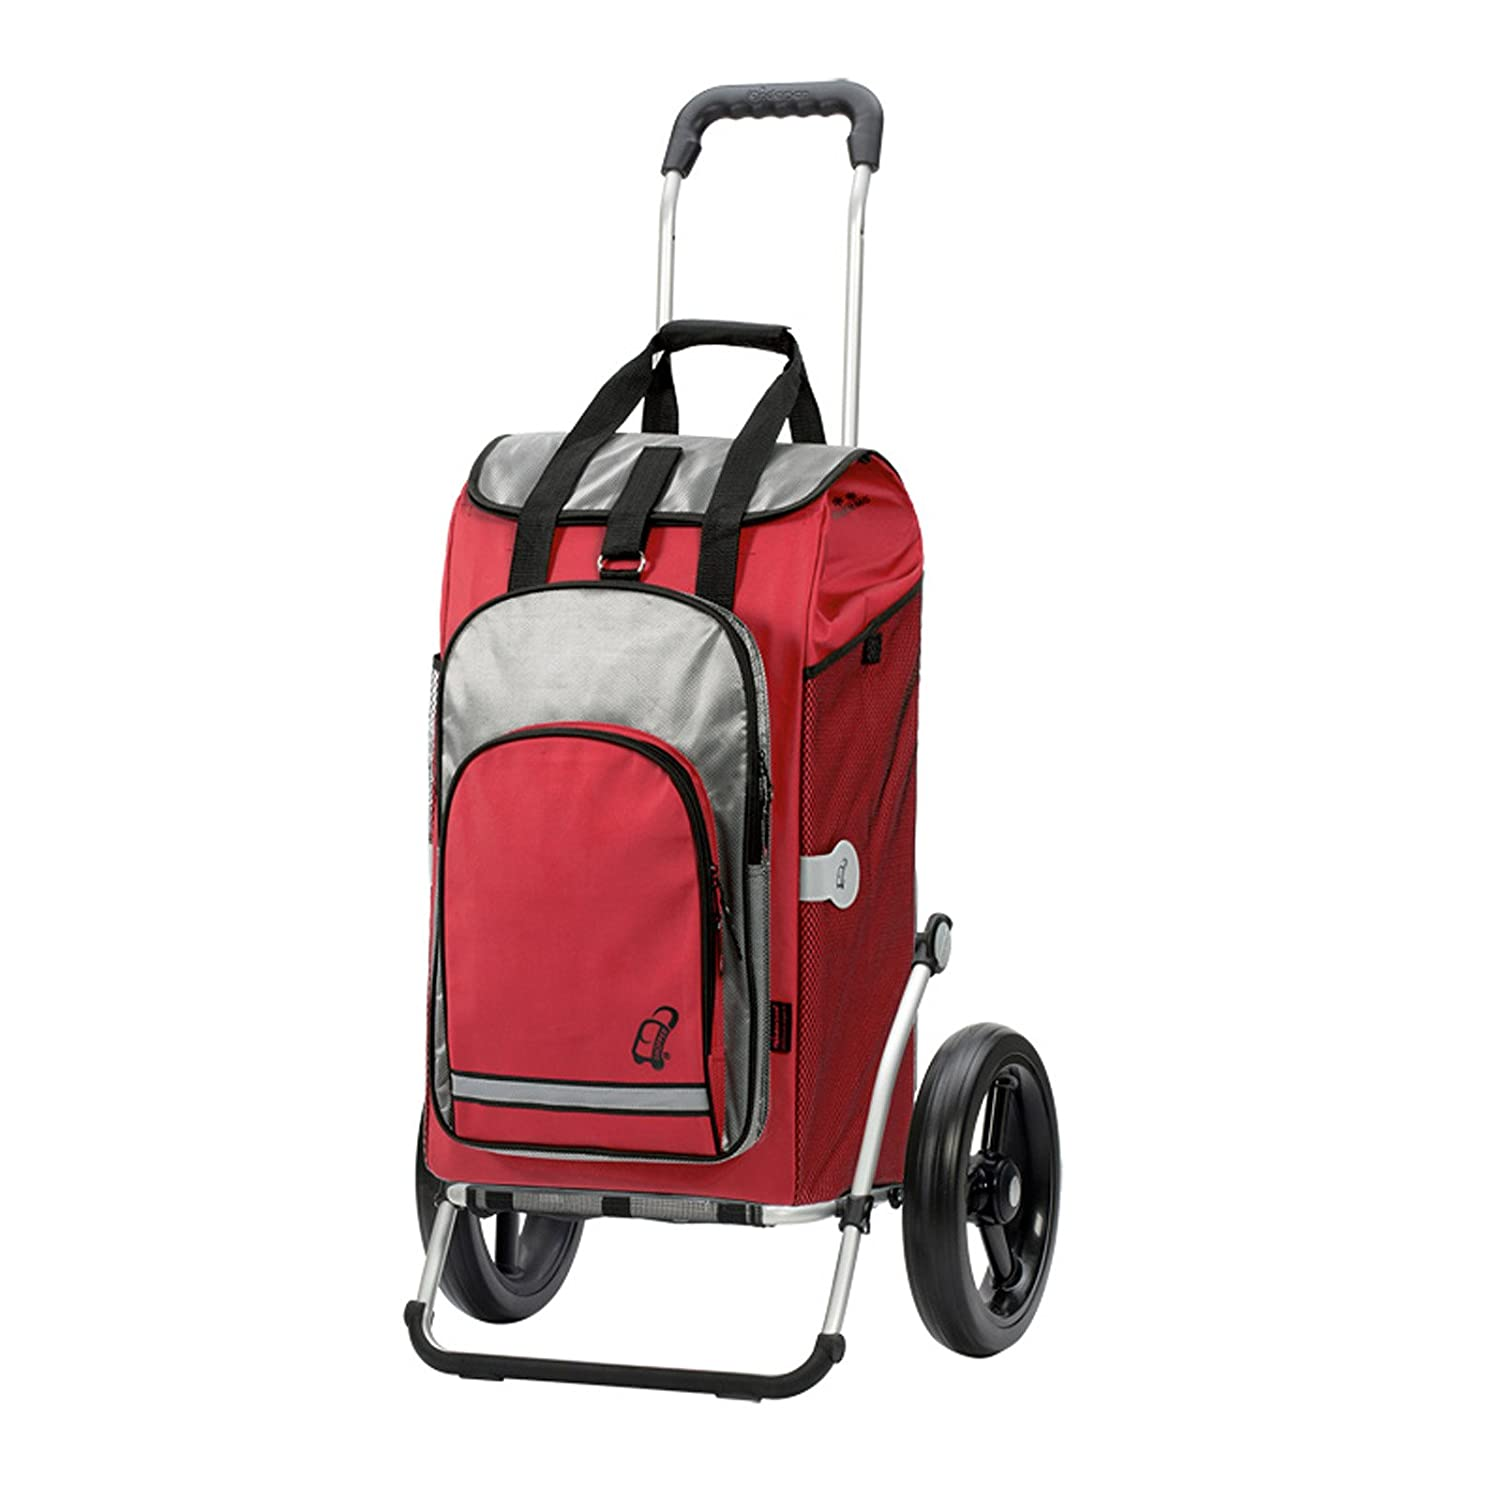 Andersen Royal Shopper 29cm Rad Einkaufsroller Einkaufs-Shopper Trolley